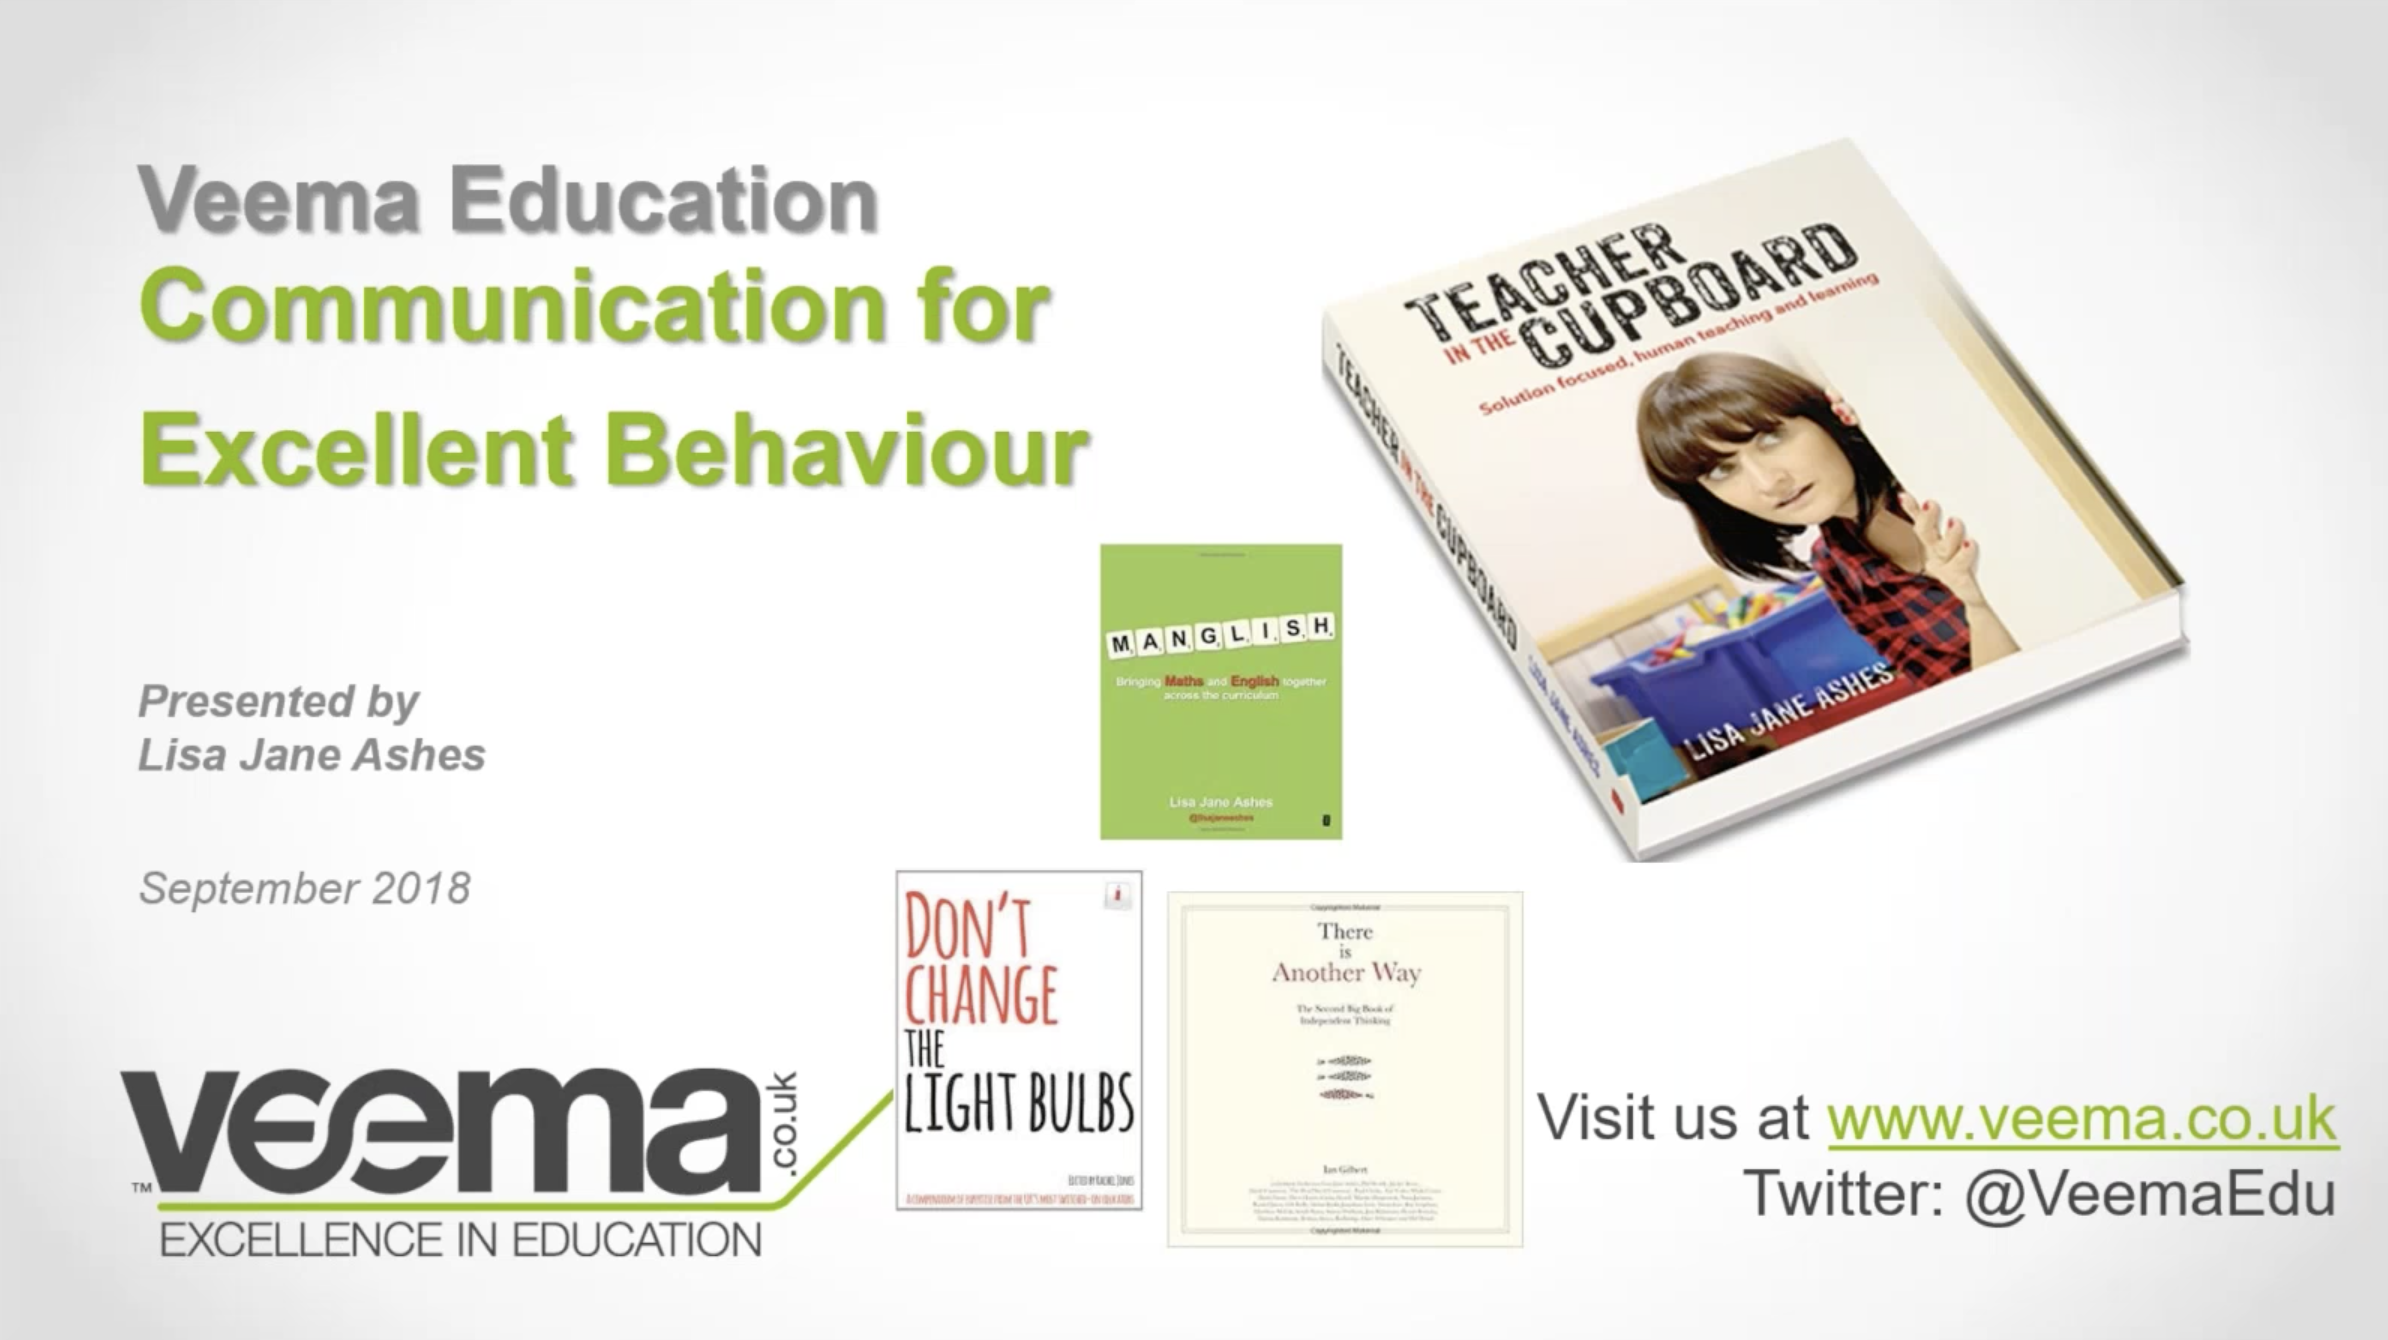 Communication for Excellent Classroom Behaviour